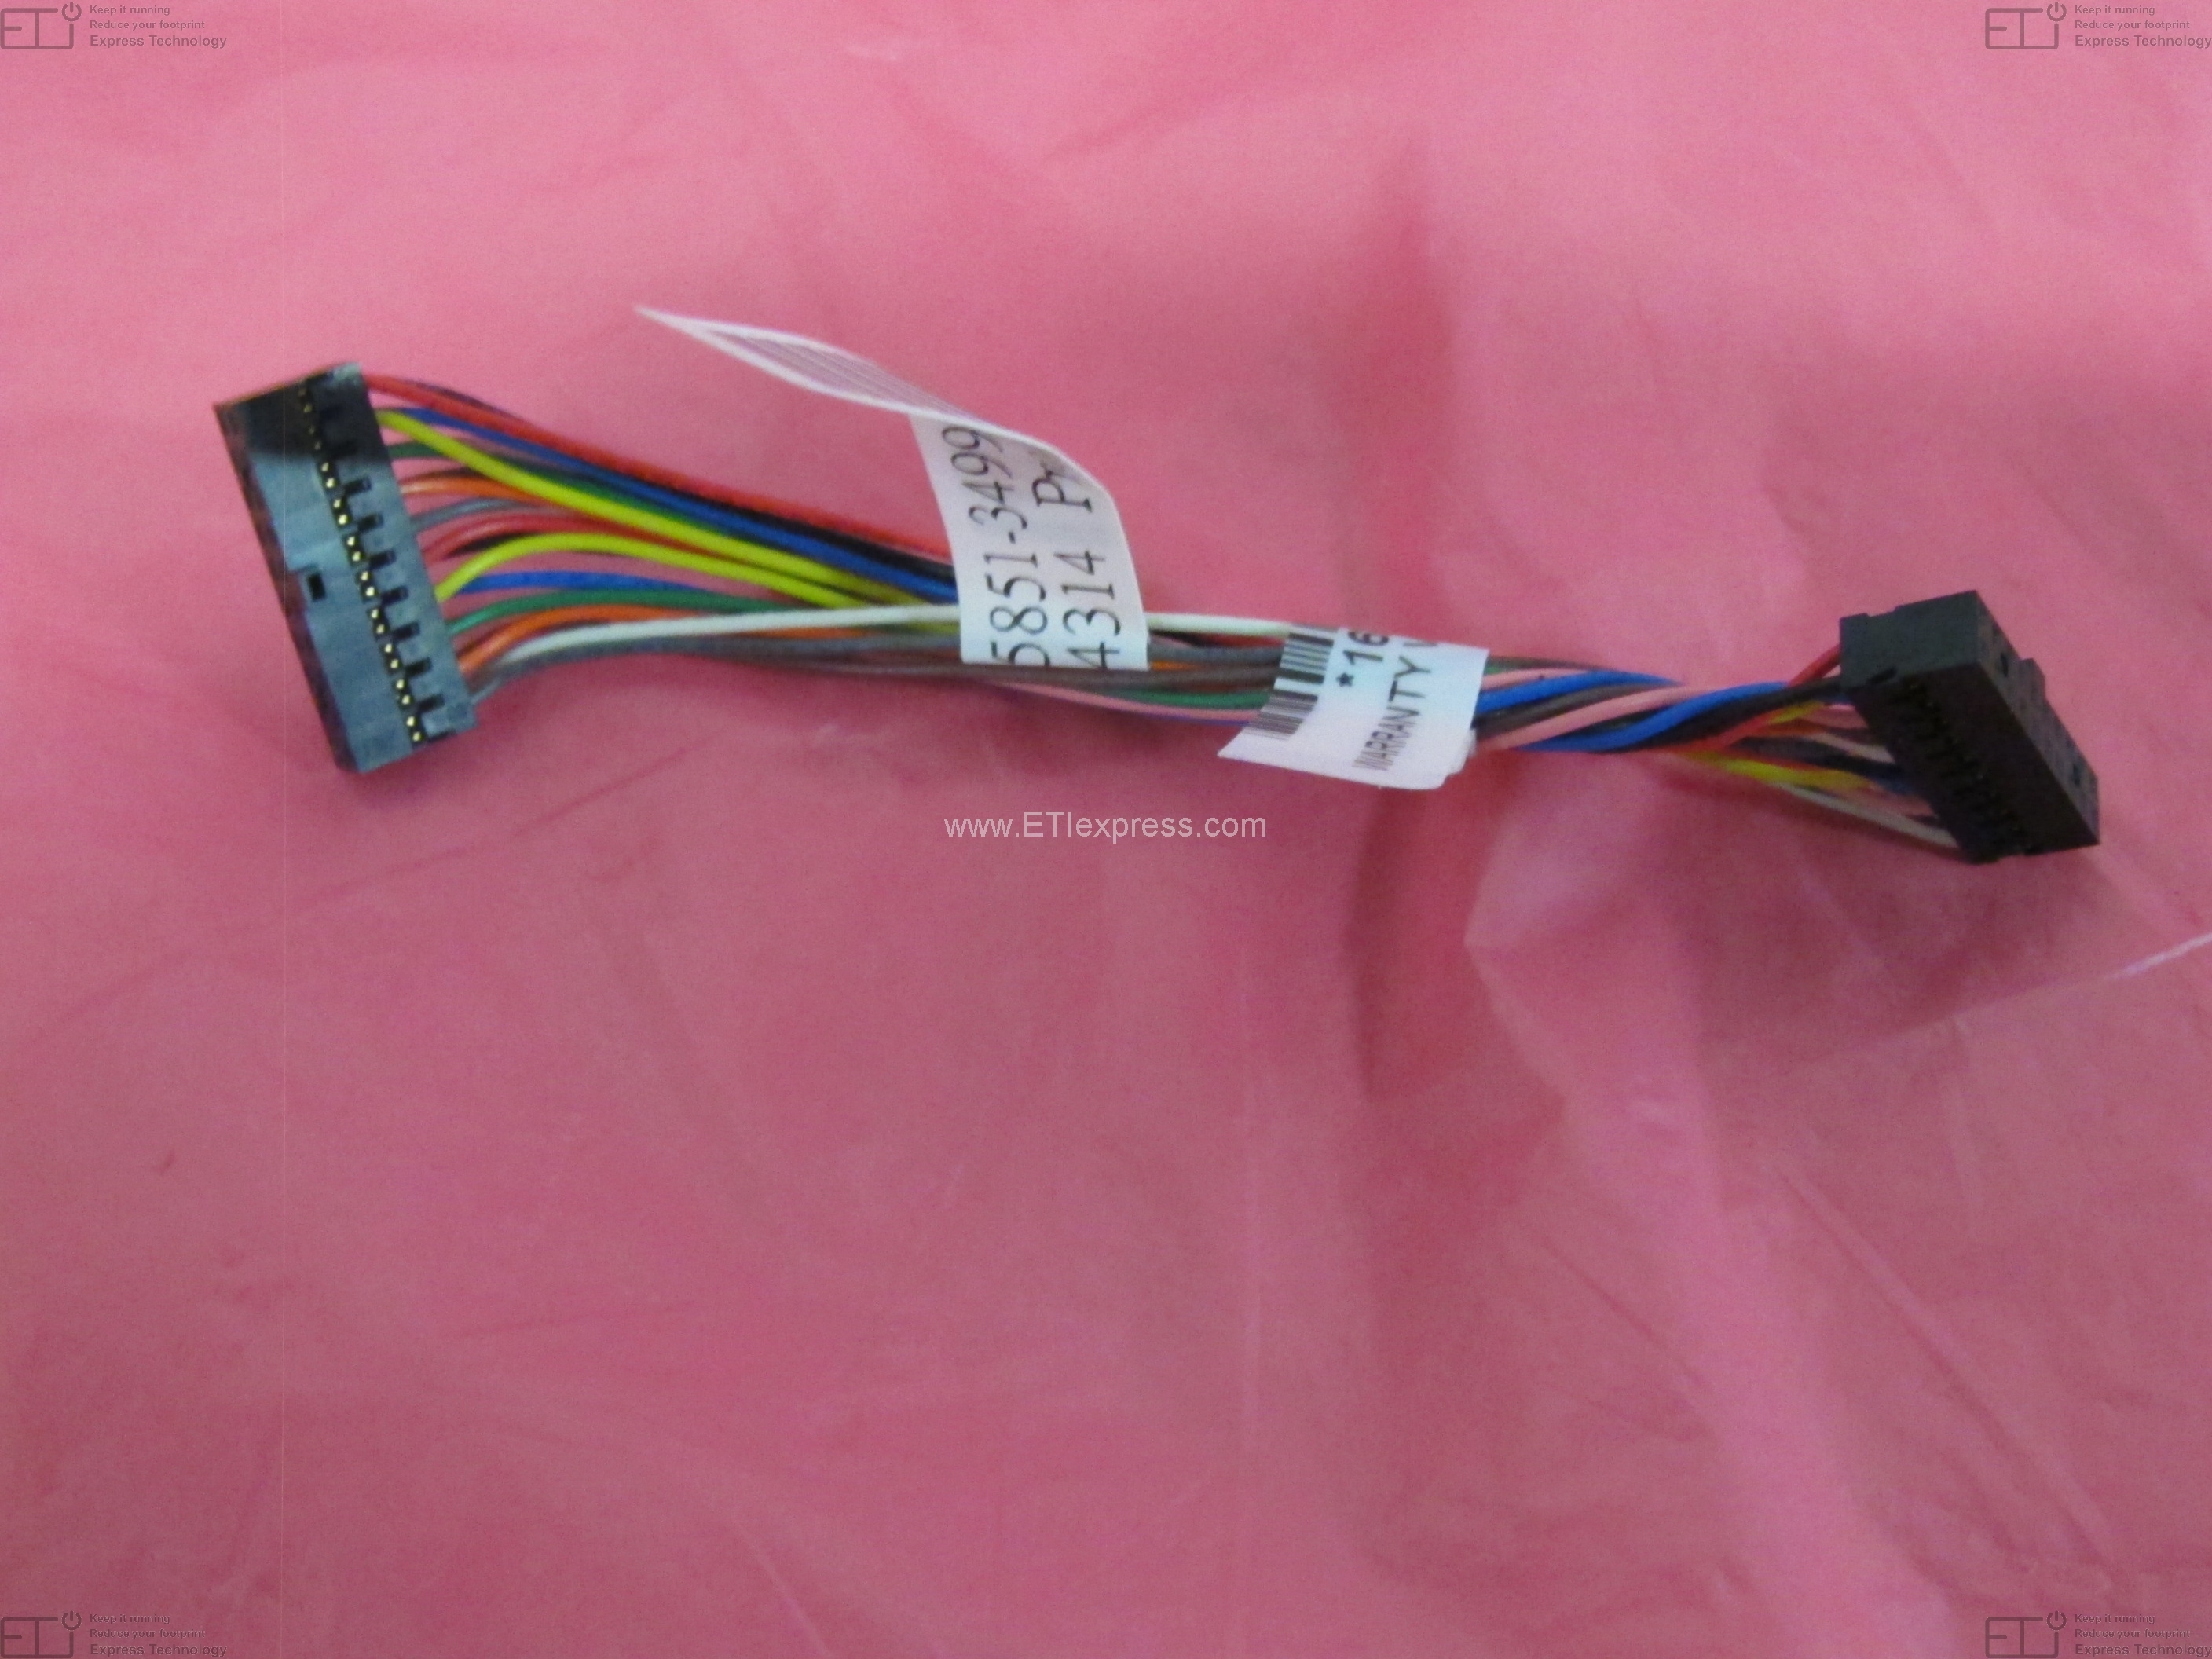 Refurbished Cables Cable Kits Kabel Touchpad 8pin 05 20cm 5851 3499